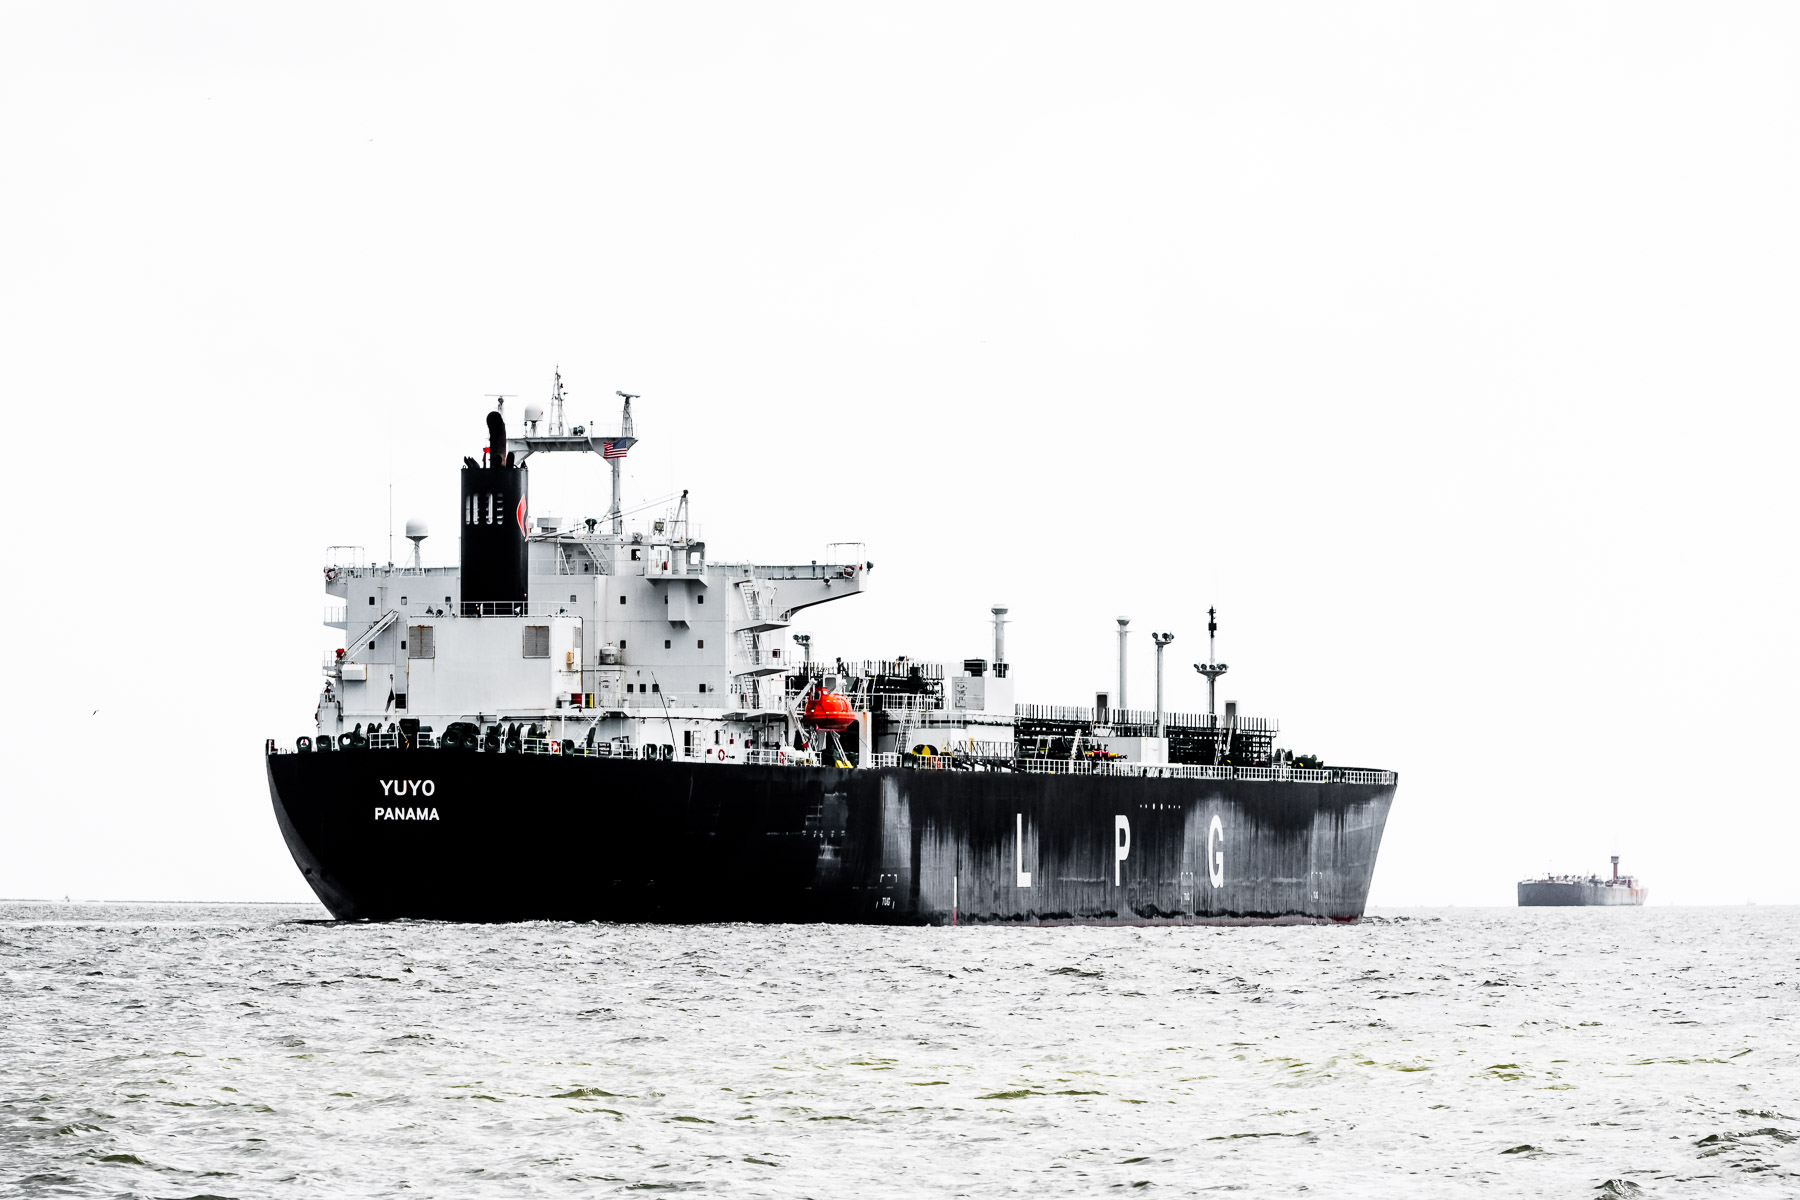 The liquefied petroleum gas tanker Yuyo transits Bolivar Roads off the coast of Galveston, Texas.